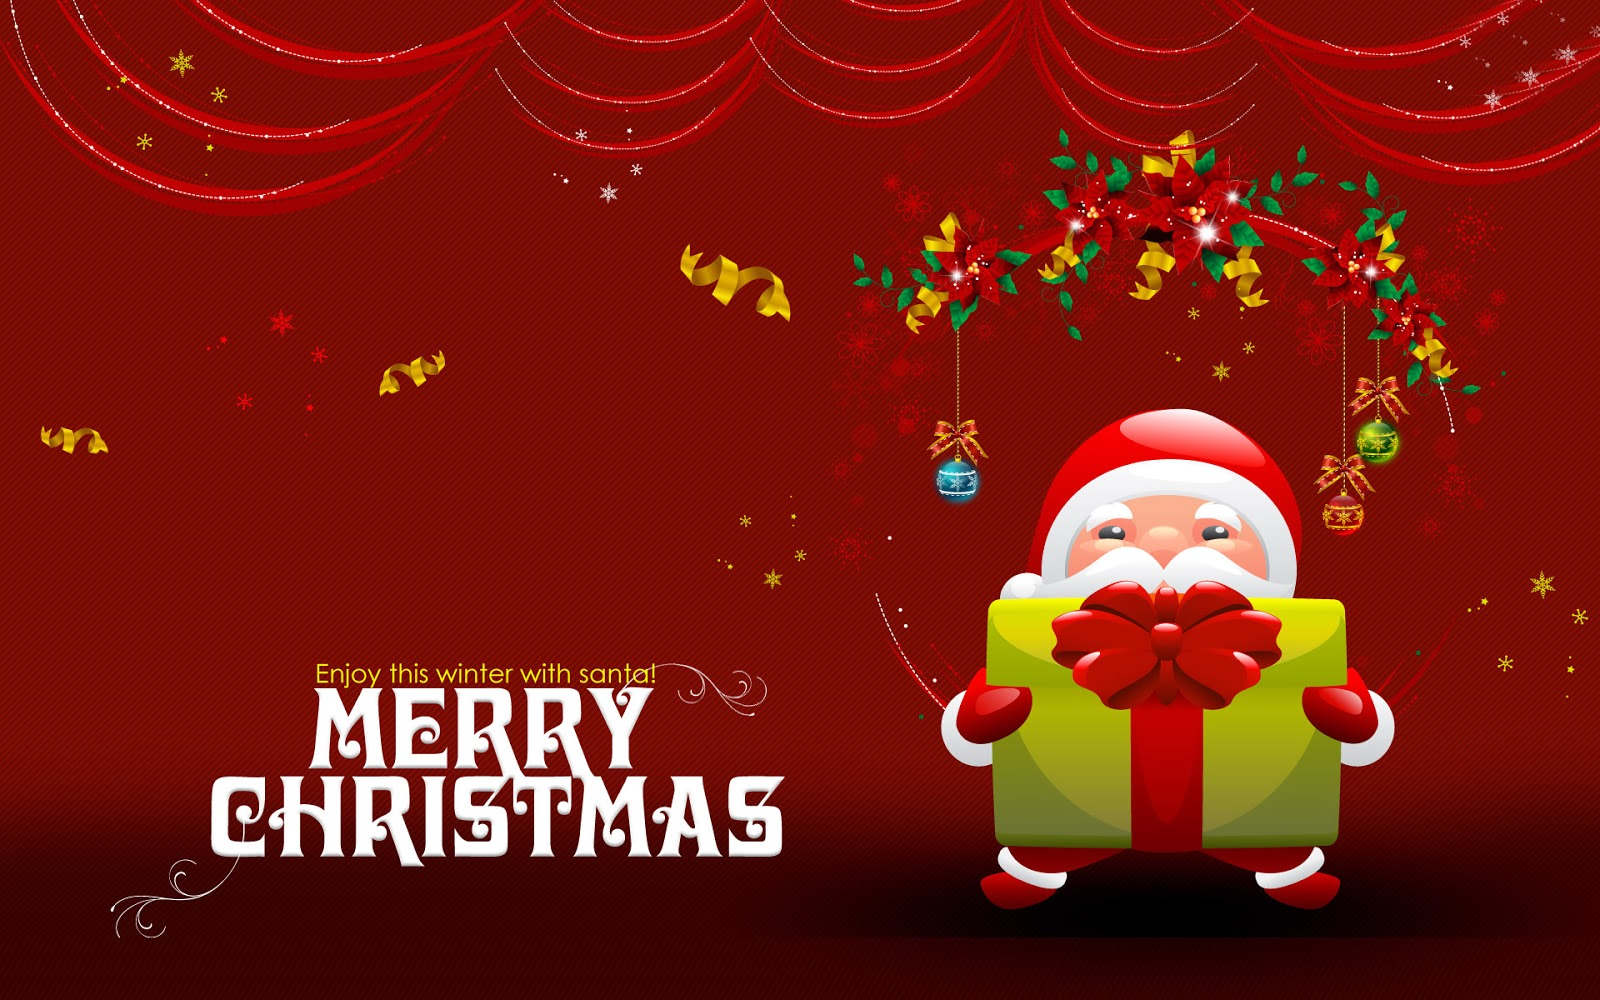 Merry Christmas Wallpaper 3d 2014, Merry Christmas 2014 - 2015 ...